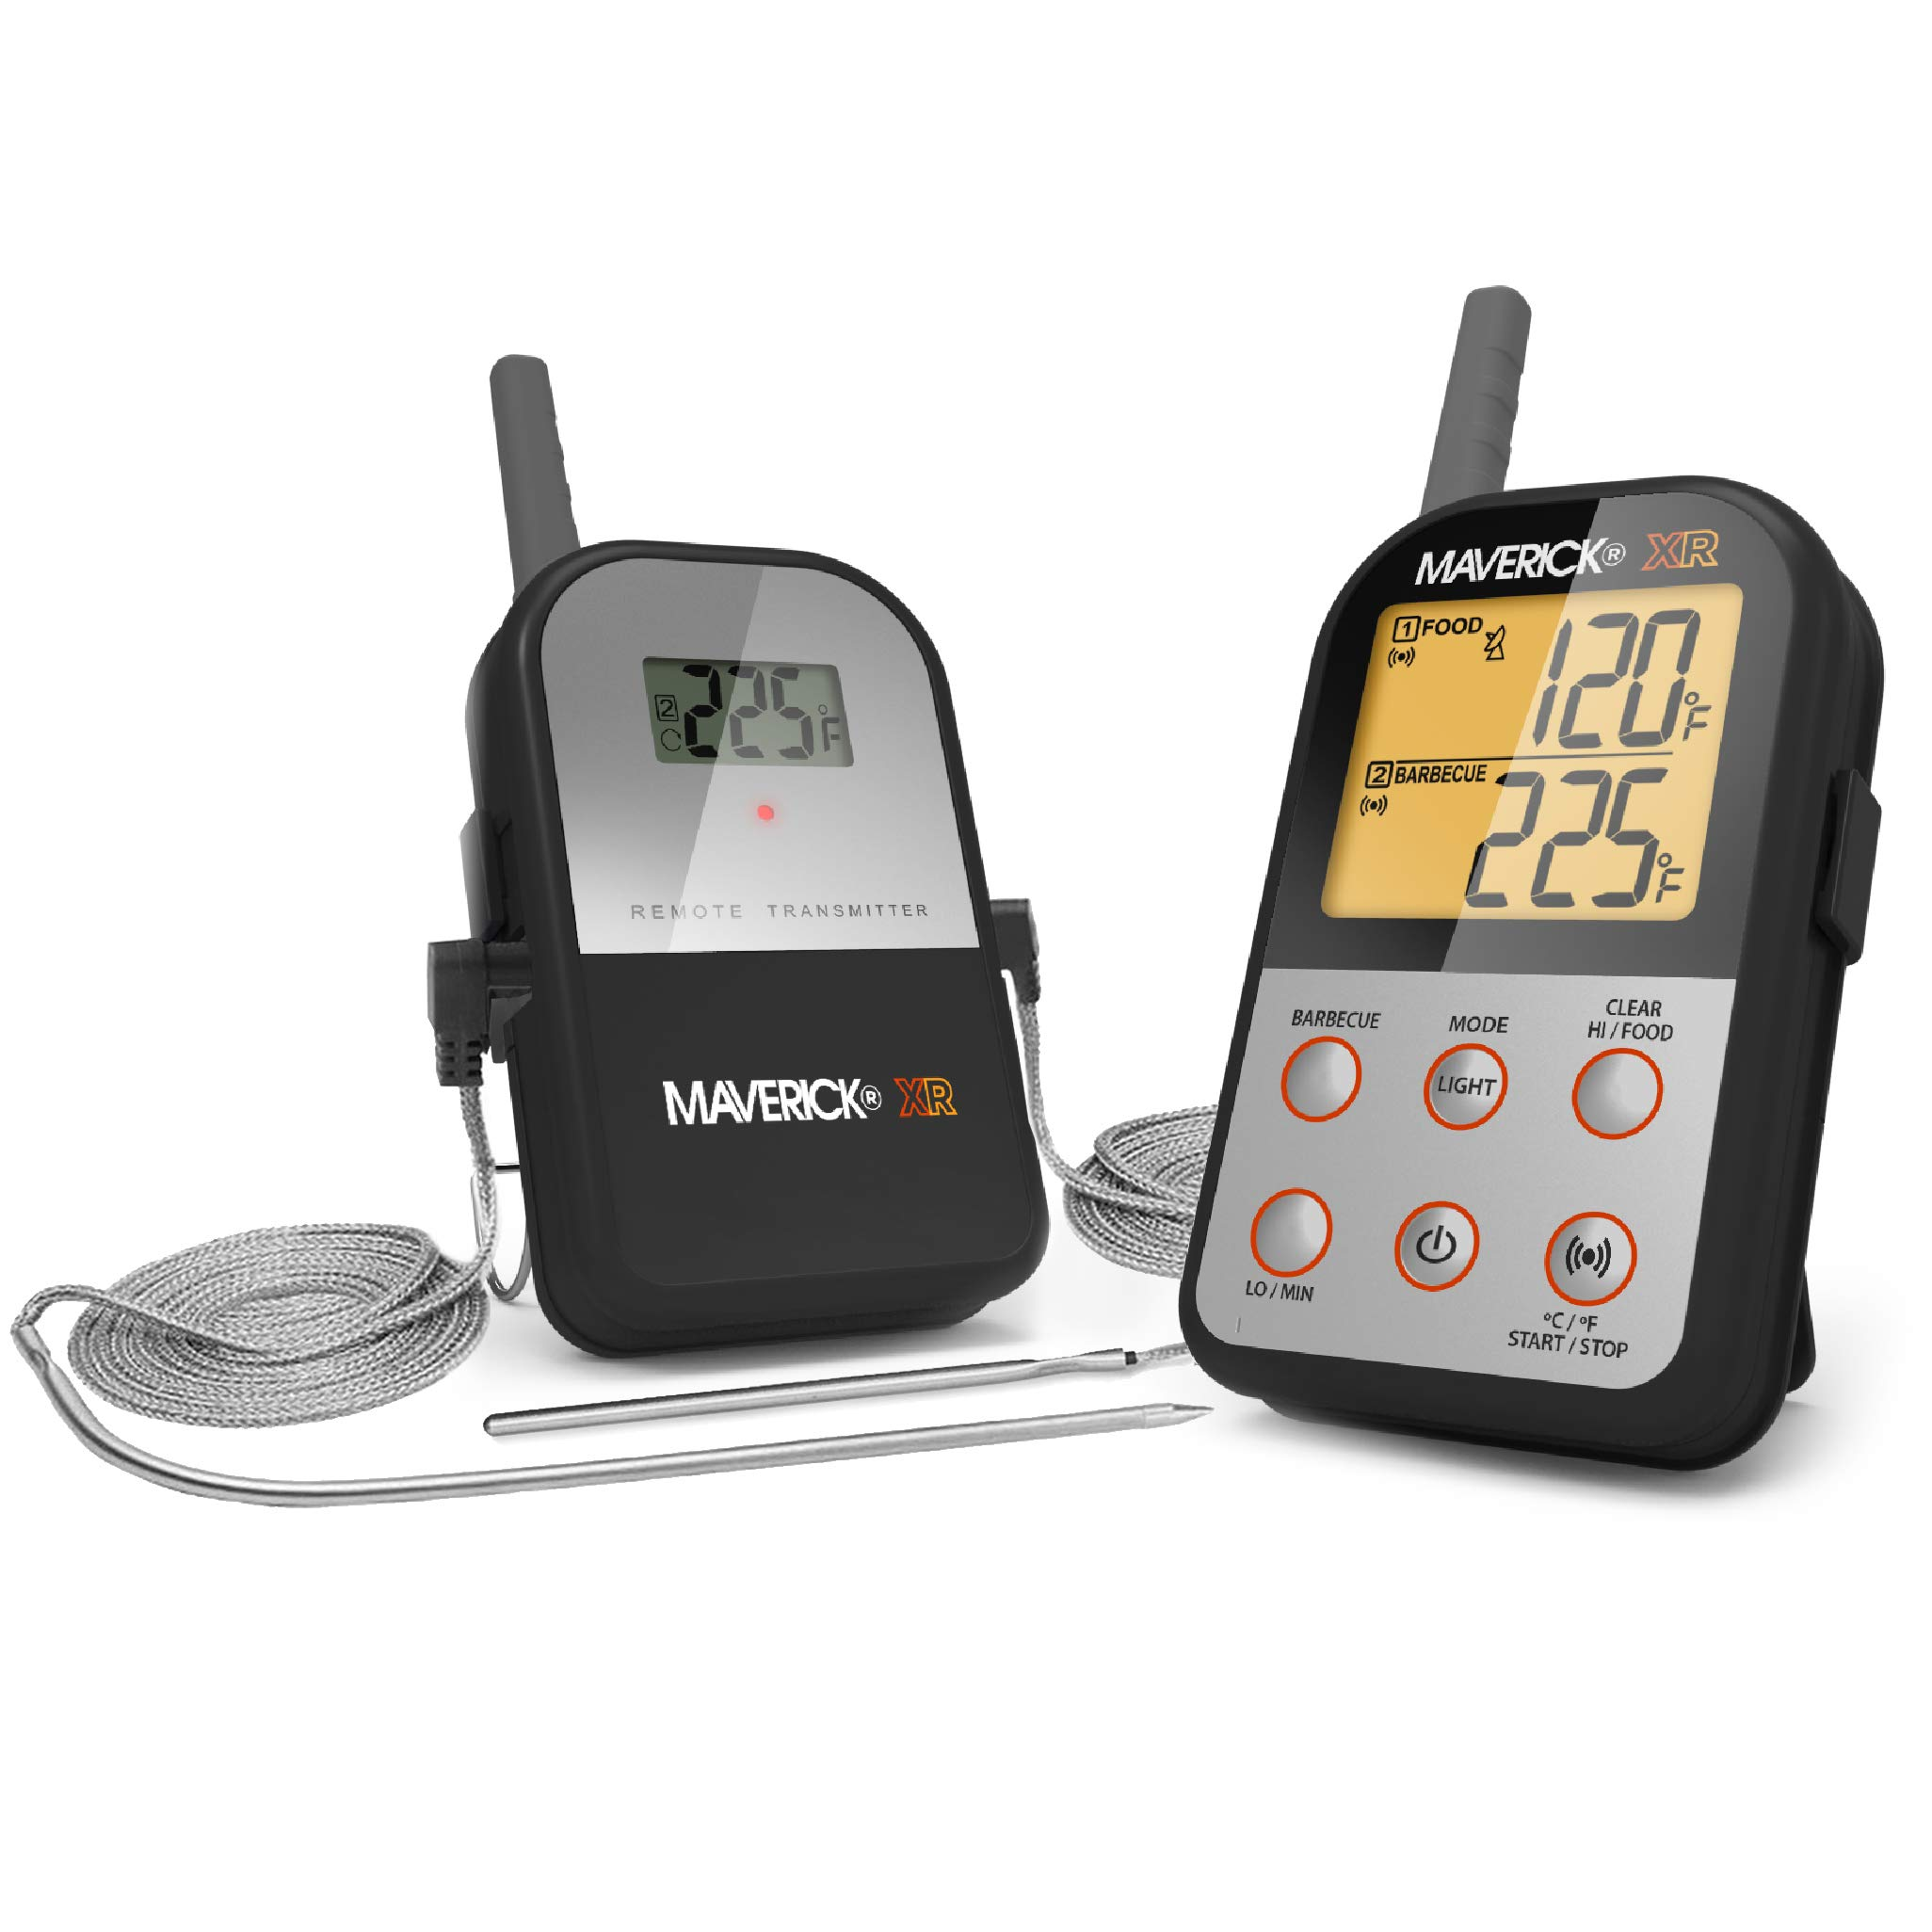 Maverick XR-30 Wireless Extended Range Digital Instant Read Cooking Kitchen Grilling Smoker BBQ Probe Meat Thermometer, Black by Maverick